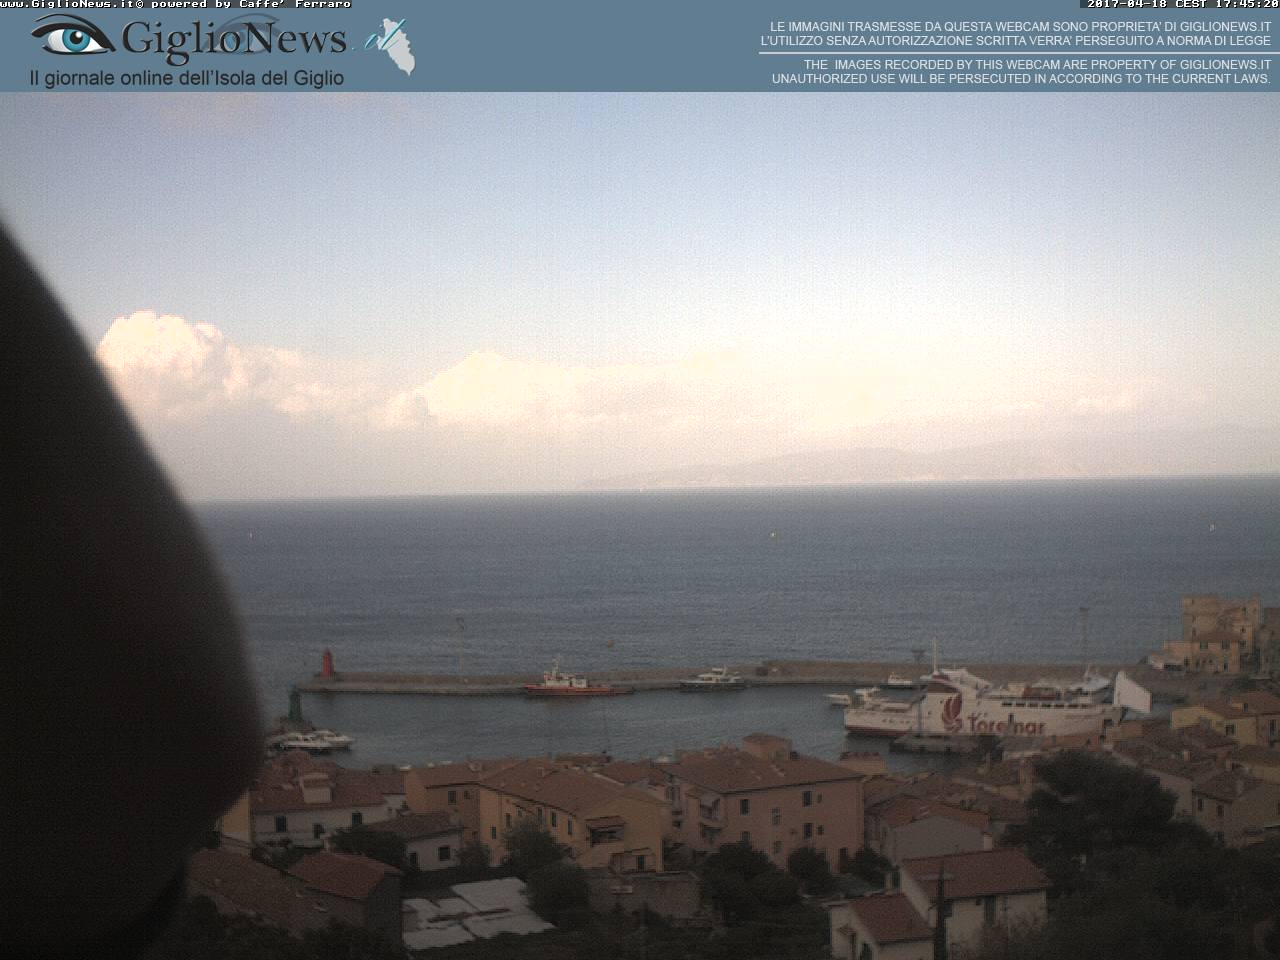 http://www.giglionews.com/isoladelgiglio.jpg